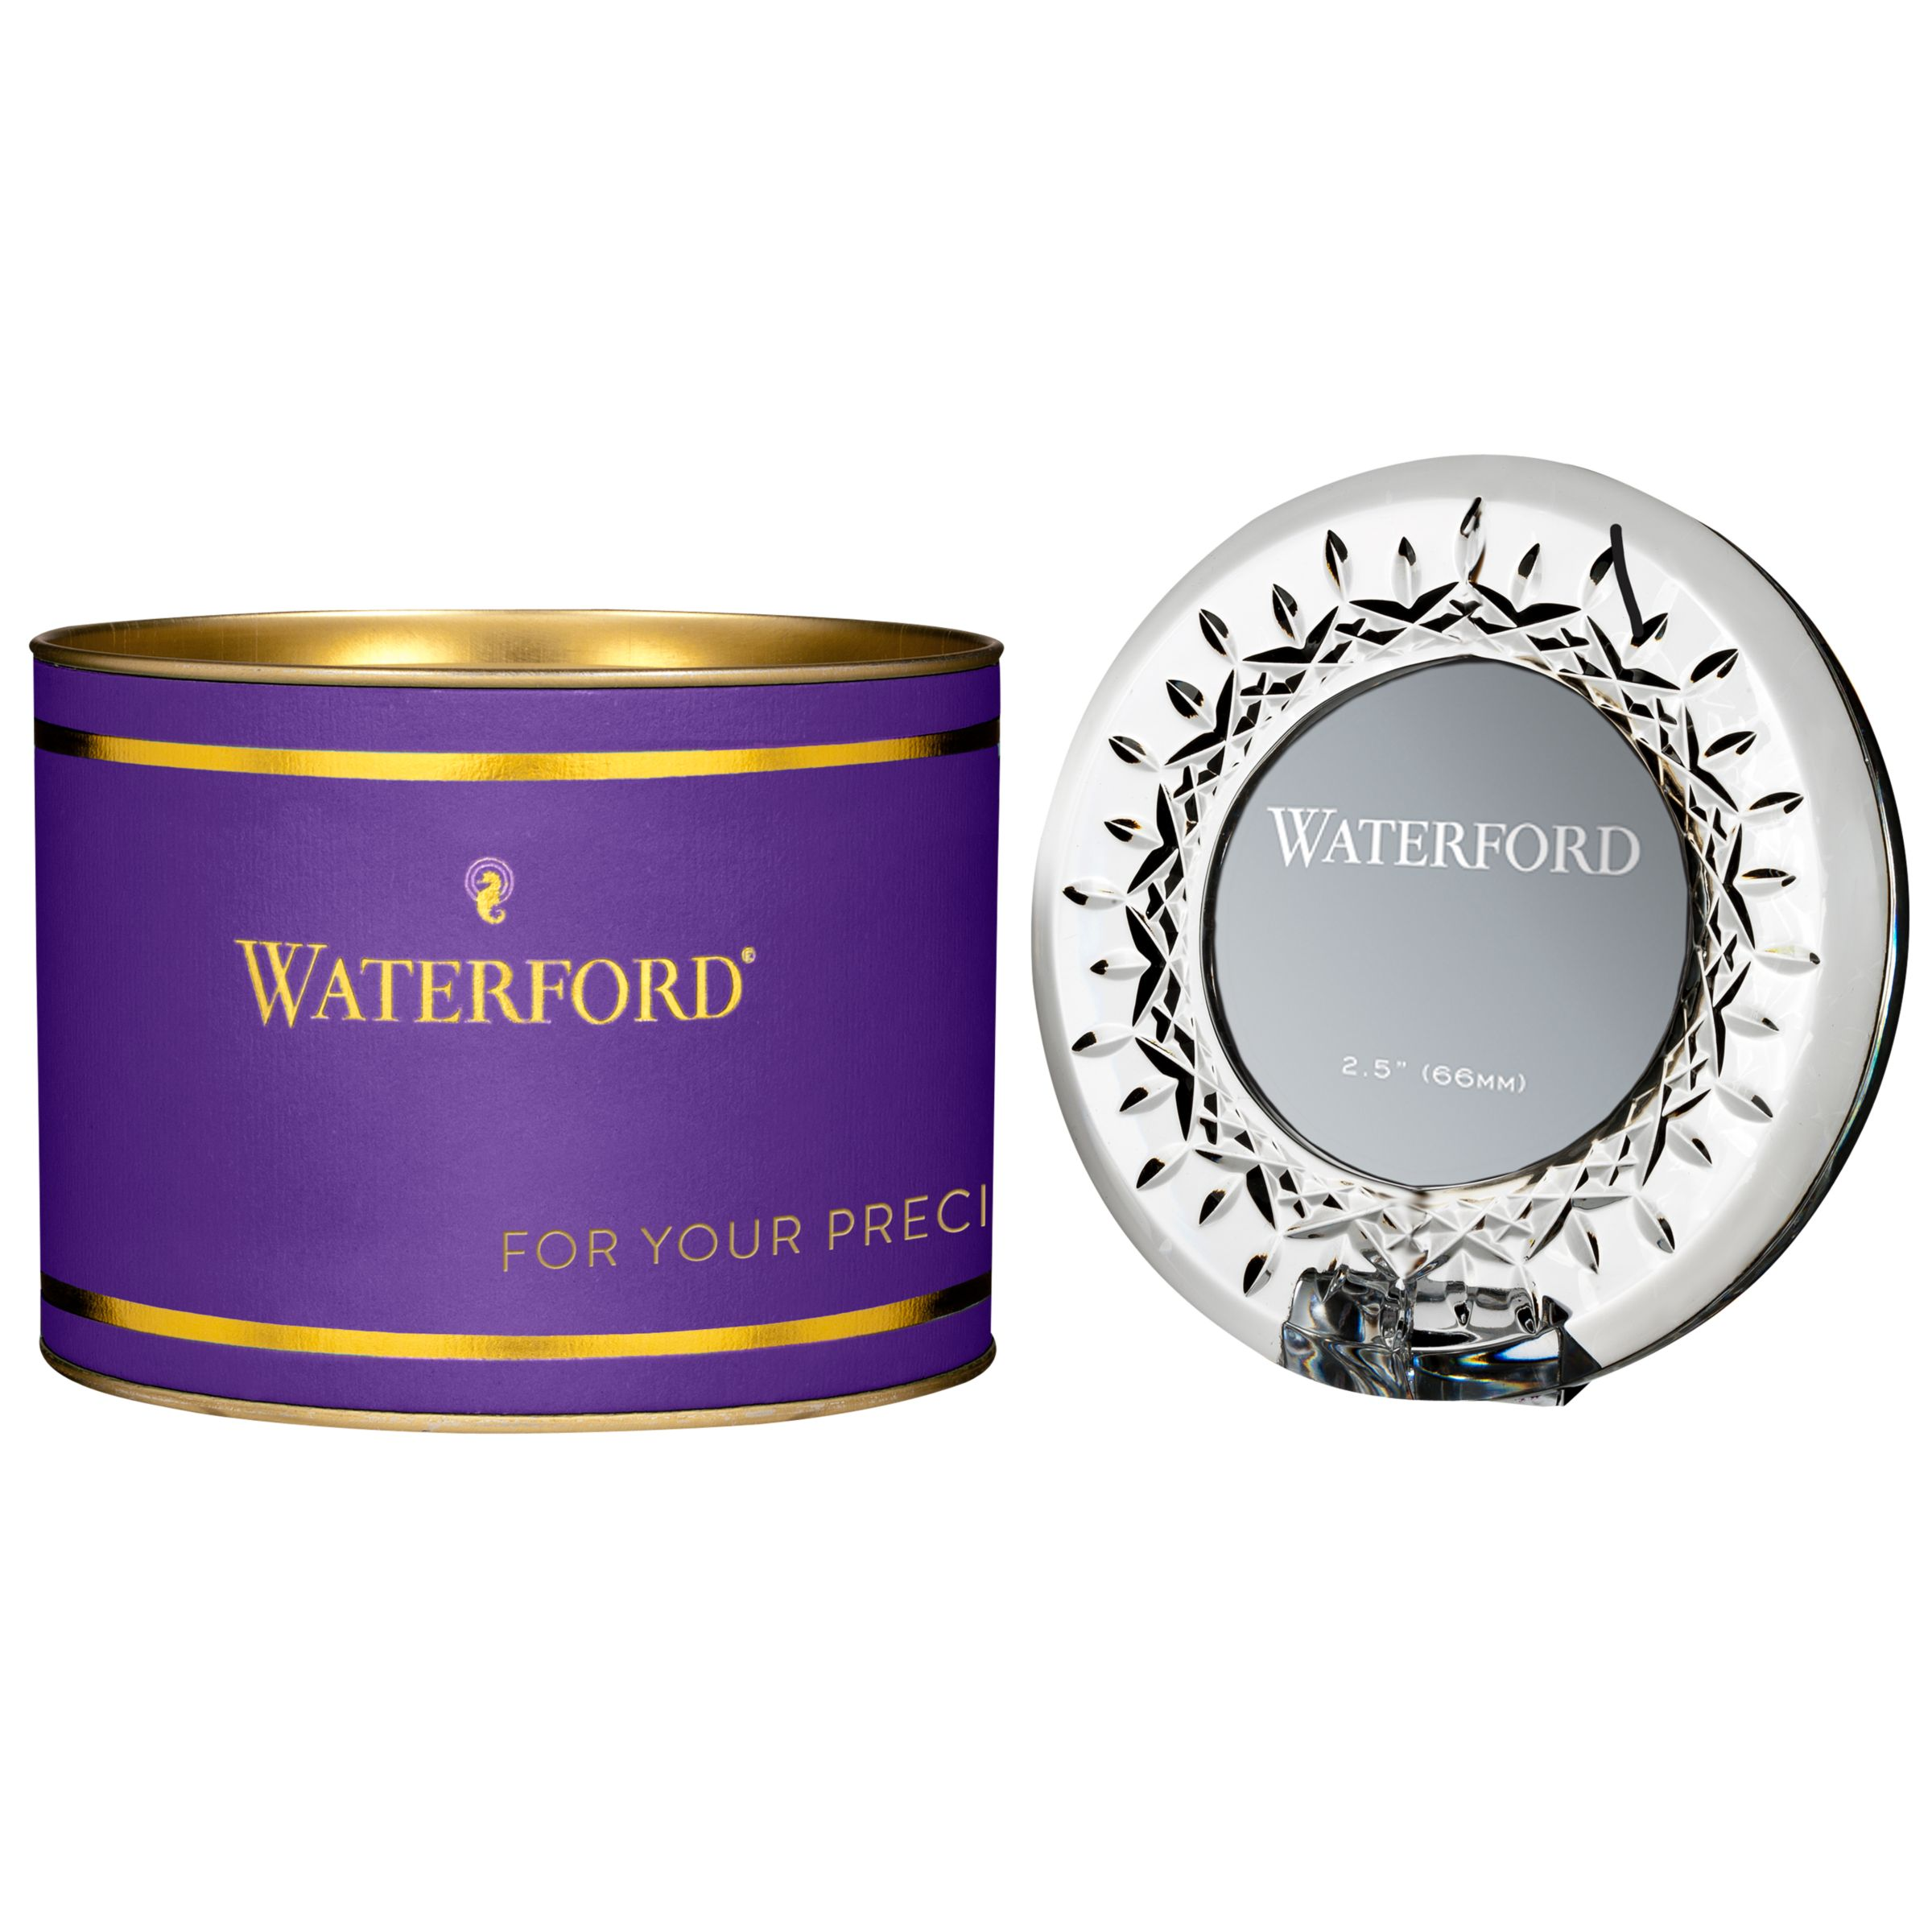 Waterford Waterford Giftology Round Mini Frame, Clear